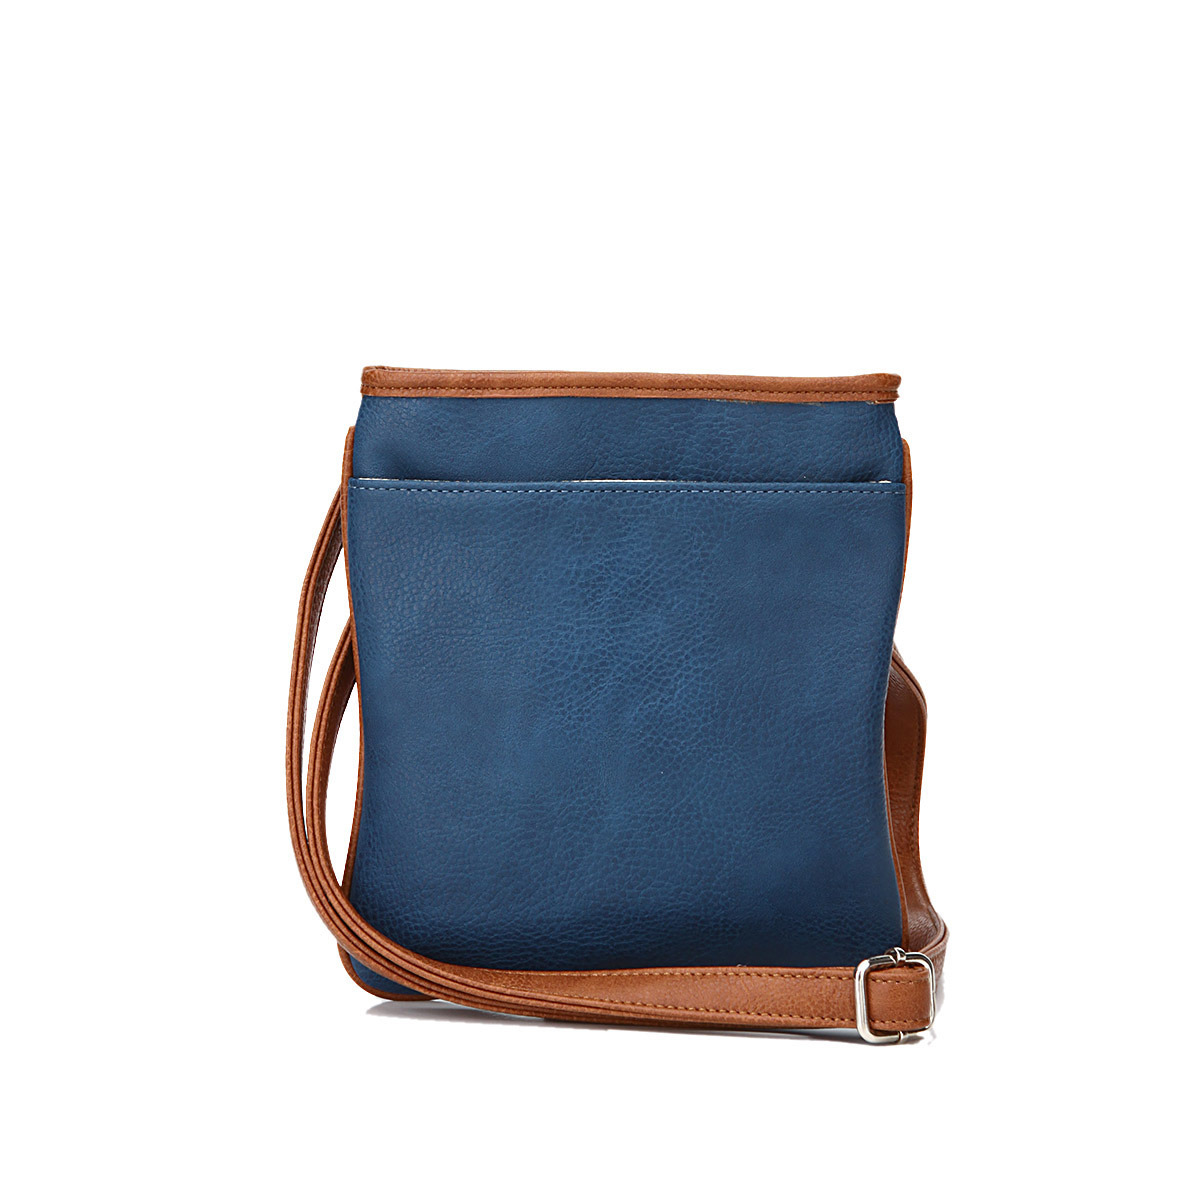 Simplest Design Blue Messenger Shoulder Bags Ladies (MBNO039036)